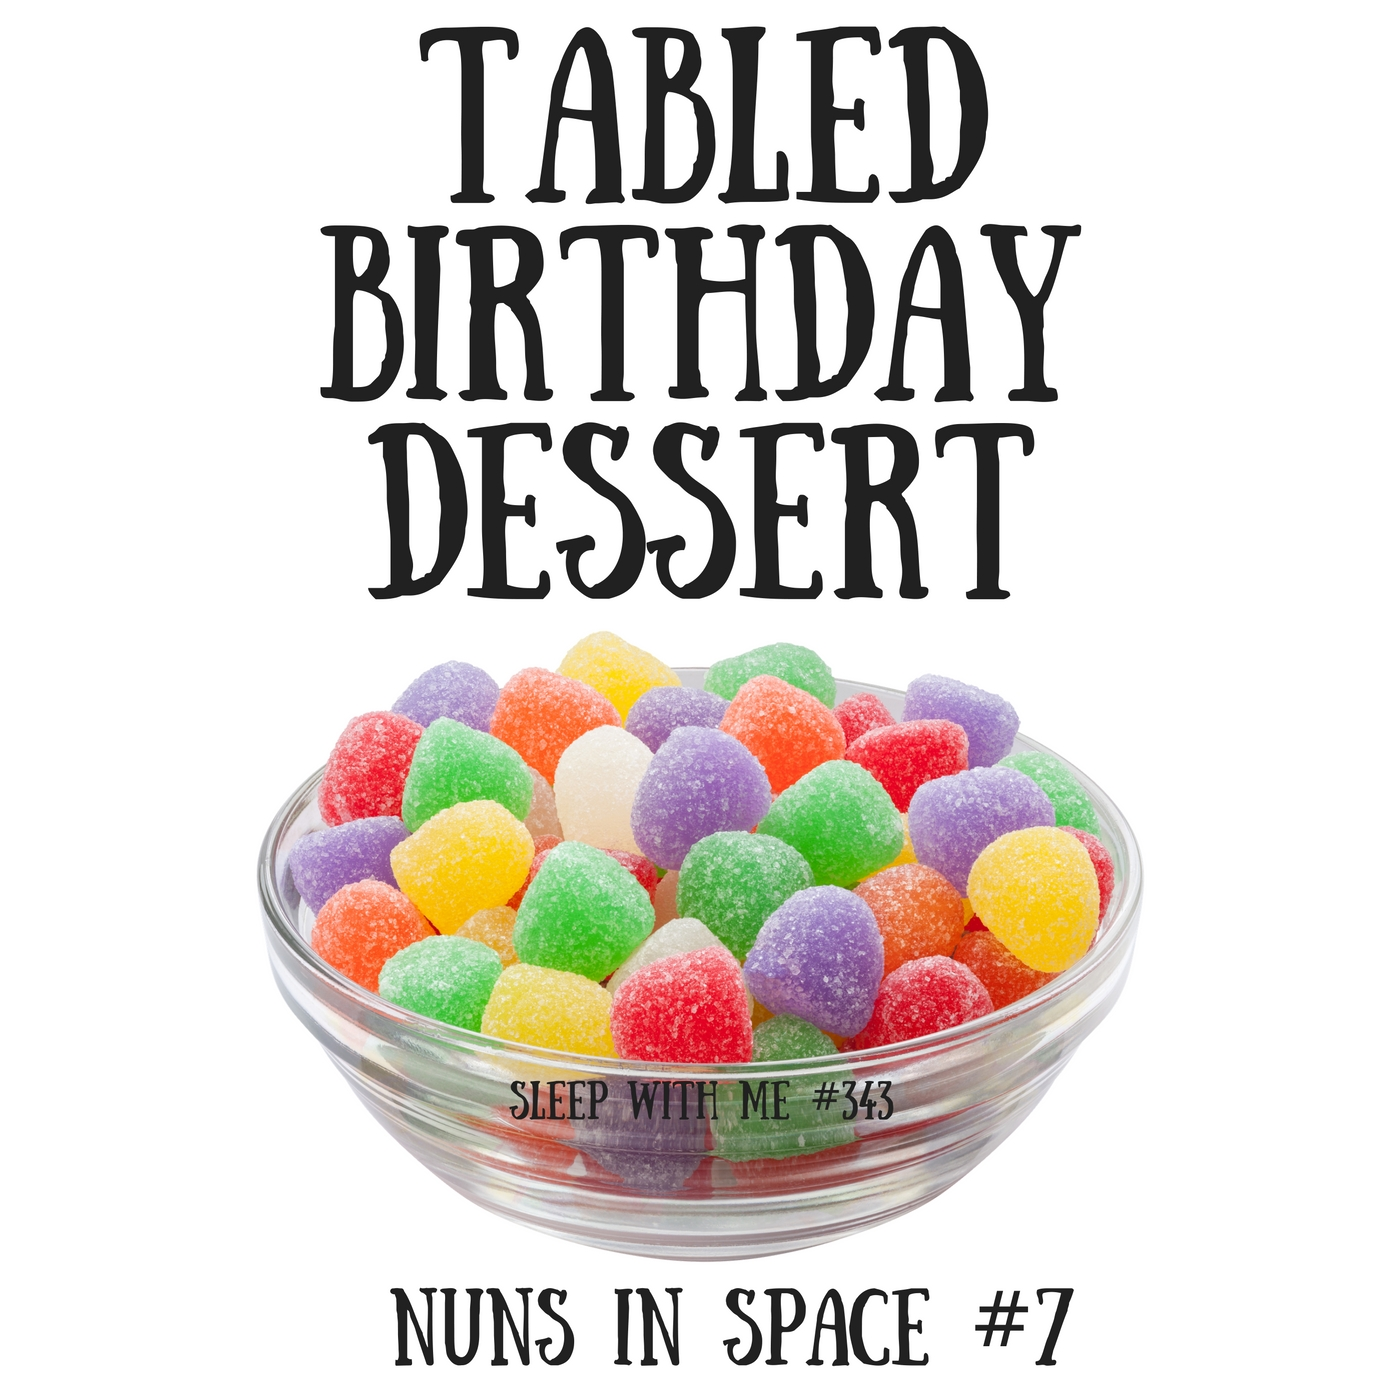 Tabled Birthday Dessert | Nuns in Space #7 | Sleep With Me #443